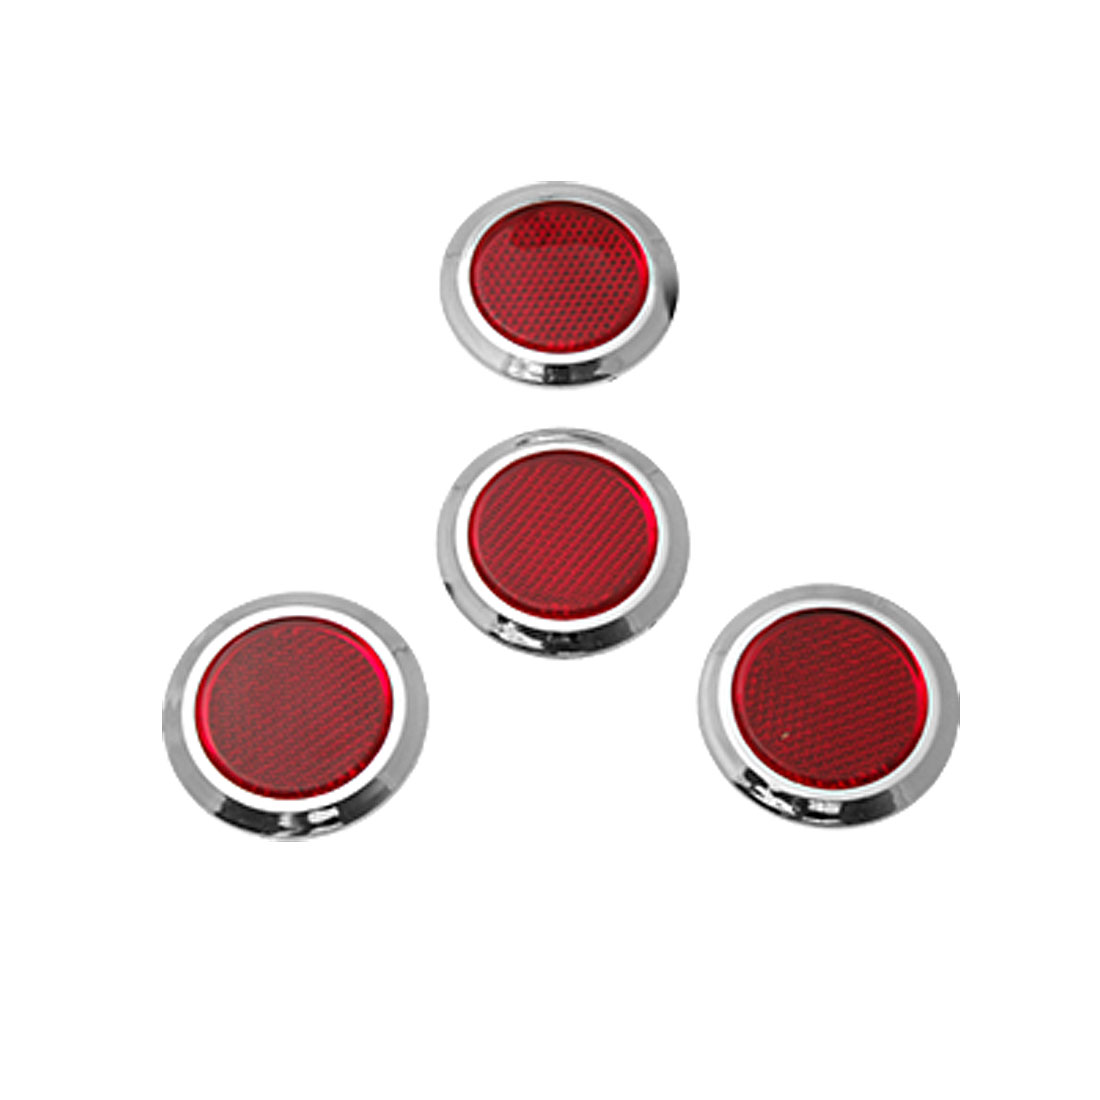 Red Round Car Bumper Door Reflector Set 4 Pieces Yblzc